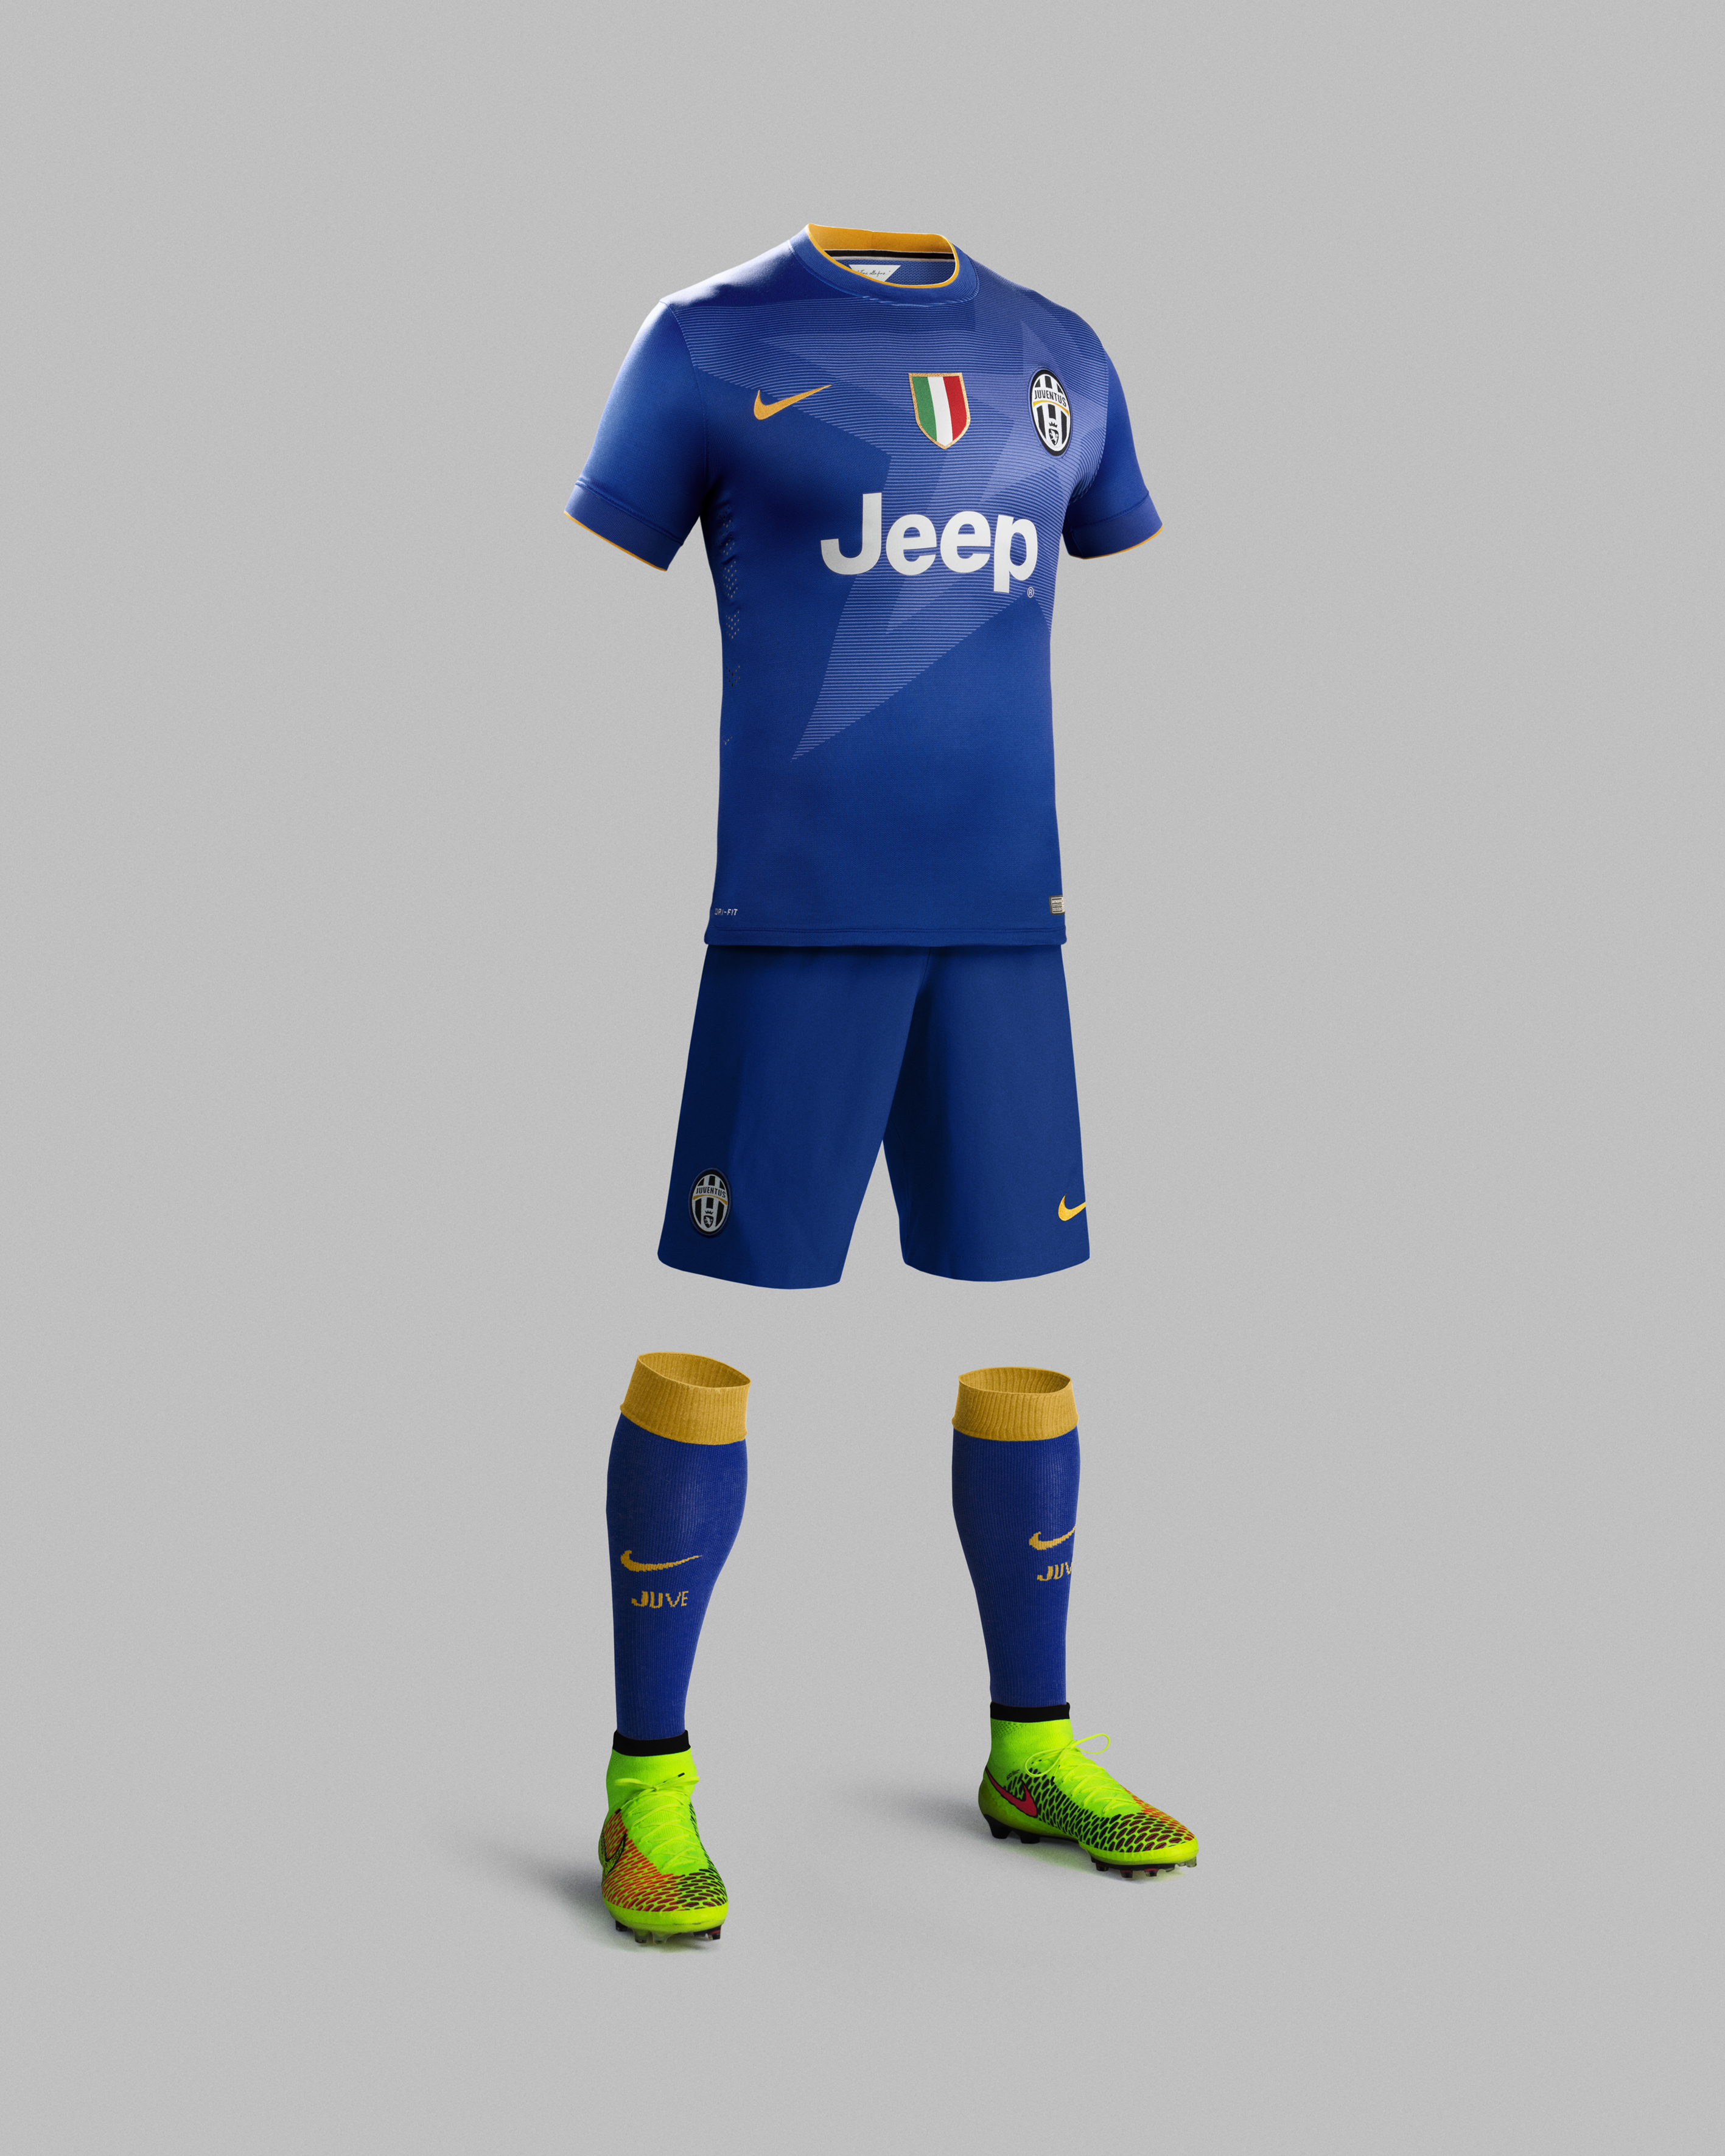 Fa14_Match_Juventus_PR_A_Full_Body_R_original.jpg?1405503232